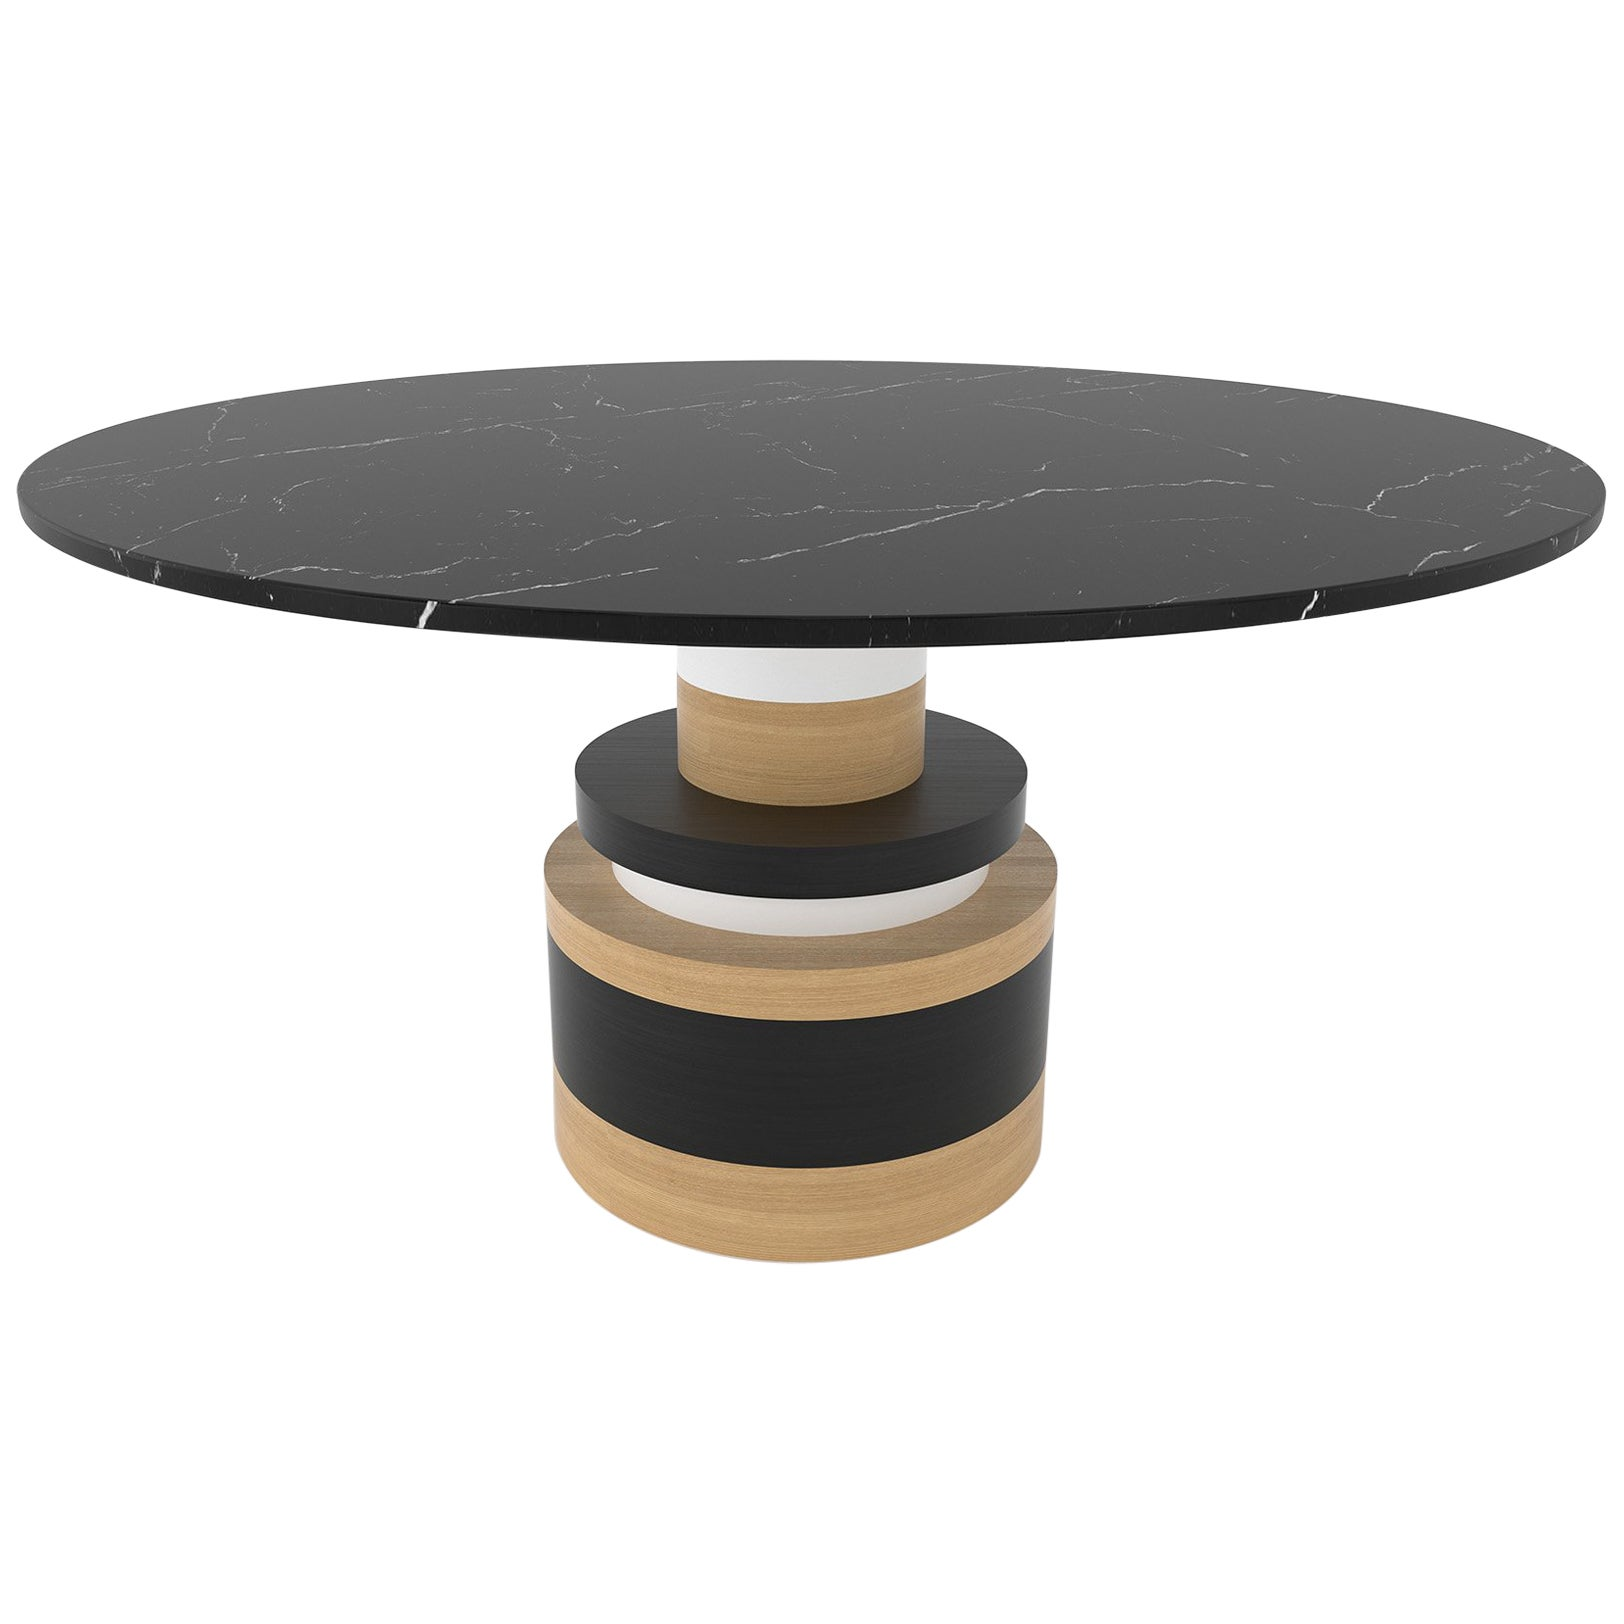 Customizable Sass Dining Table from Souda, Large, Black Marble Top